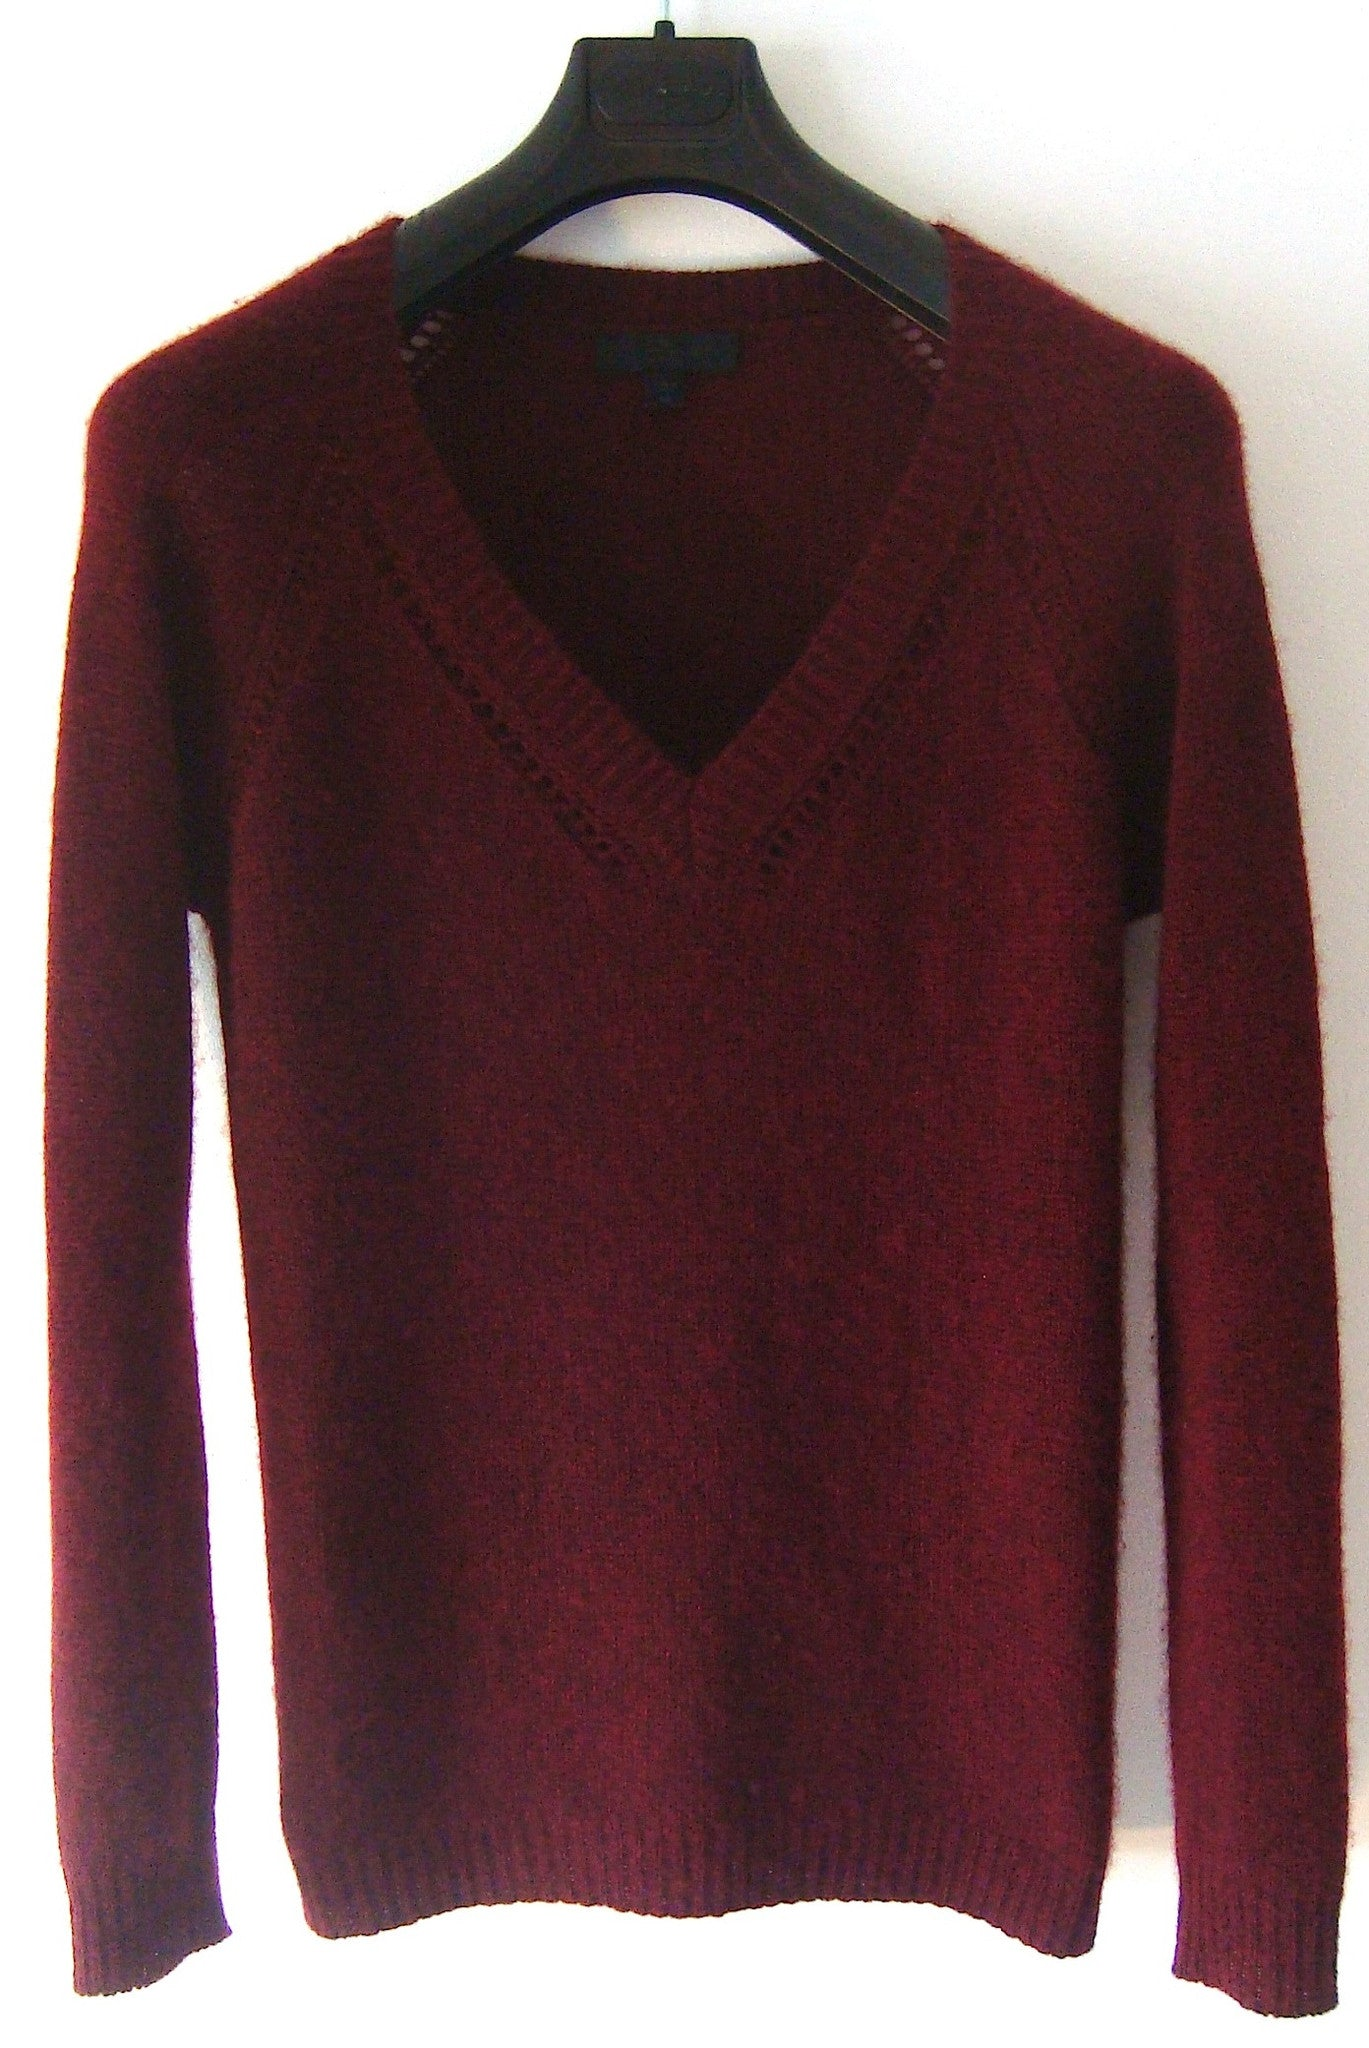 2012 Cashmere Sweater with Crochet Detailing